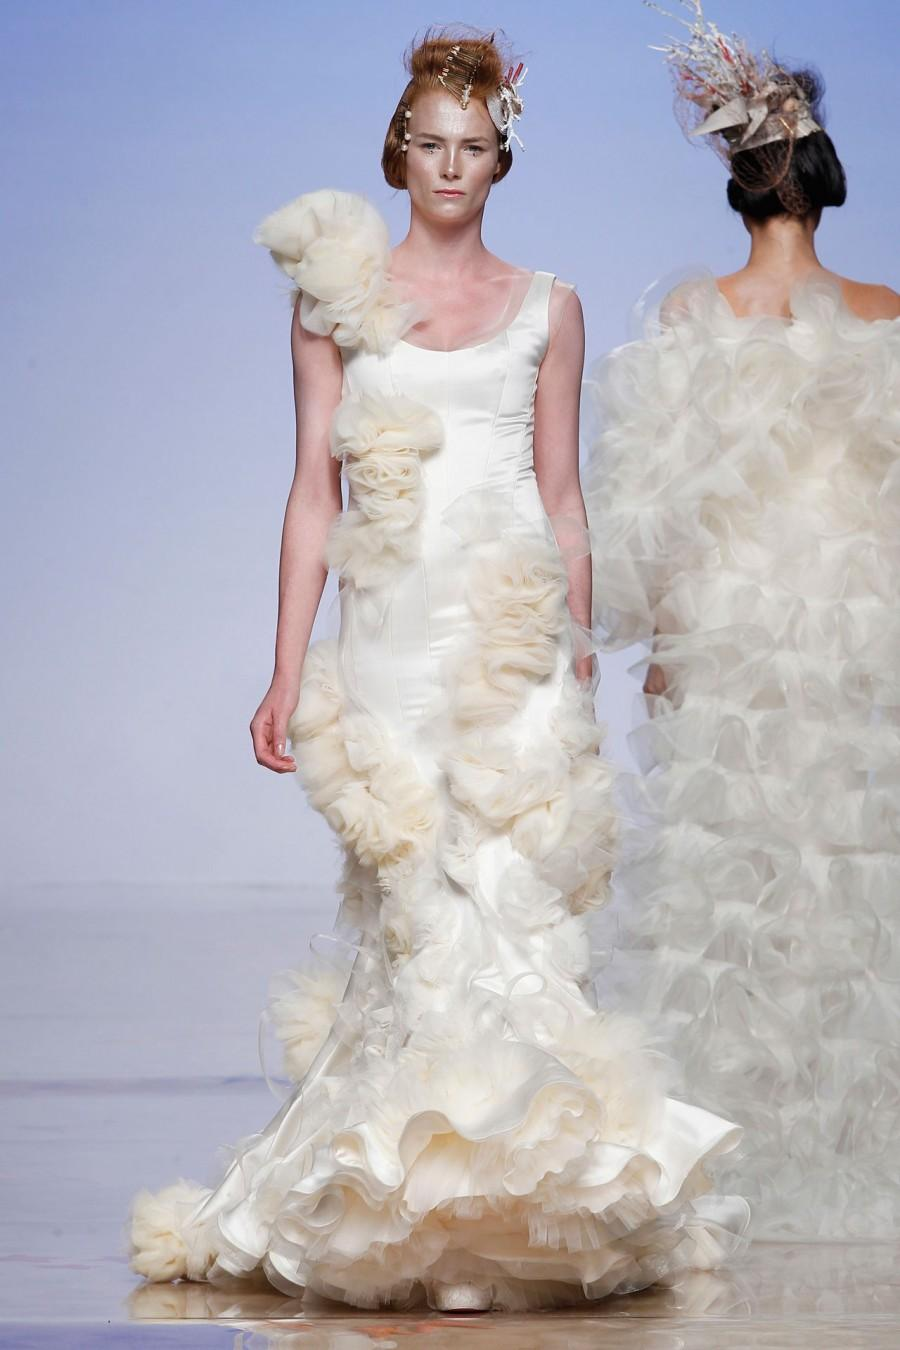 Mariage - Victorio & Lucchino - 2013 Collection - Barcelona Bridal Week 784107 - granddressy.com